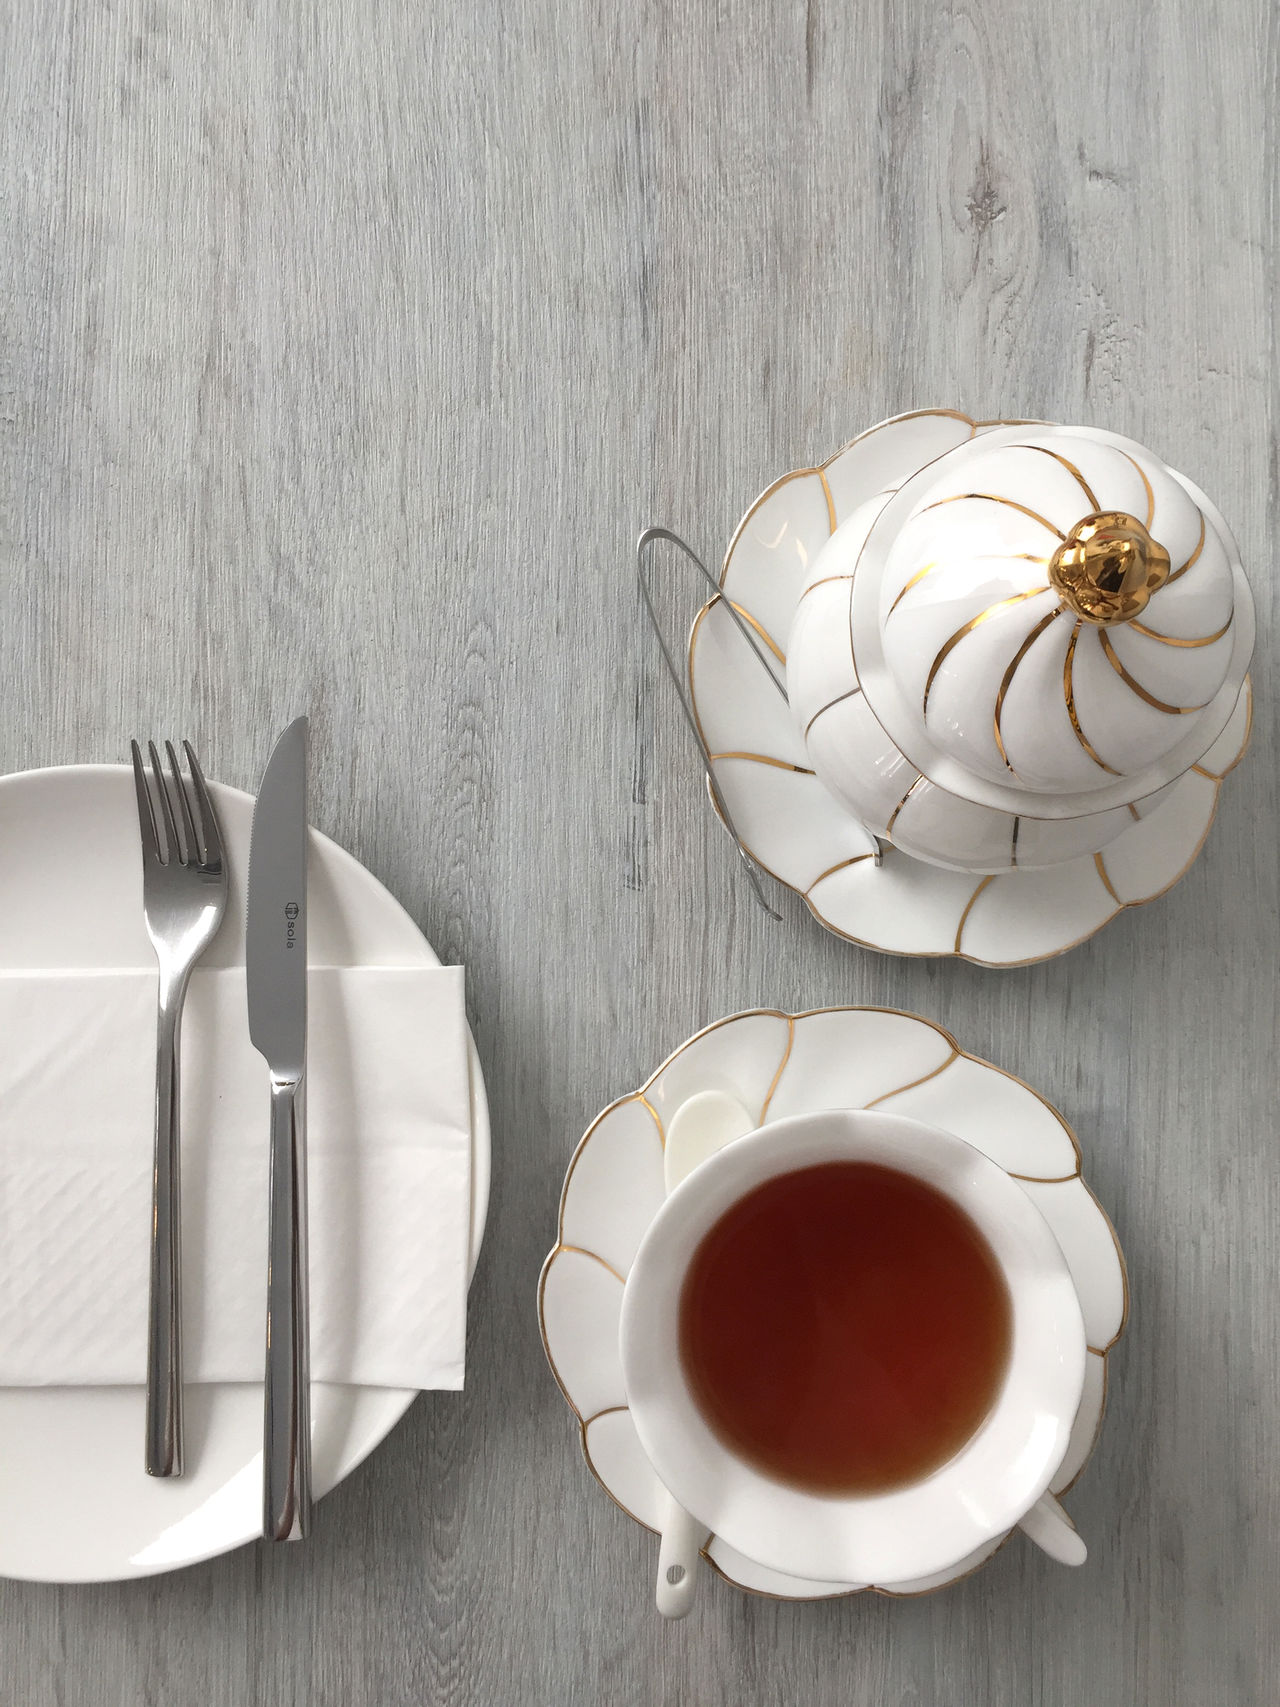 Afternoon Tea Breakfast Coffee - Drink Coffee Break Coffee Cup Day Drink Food And Drink High Angle View Indoors  No People Table Tea - Hot Drink Wood - Material